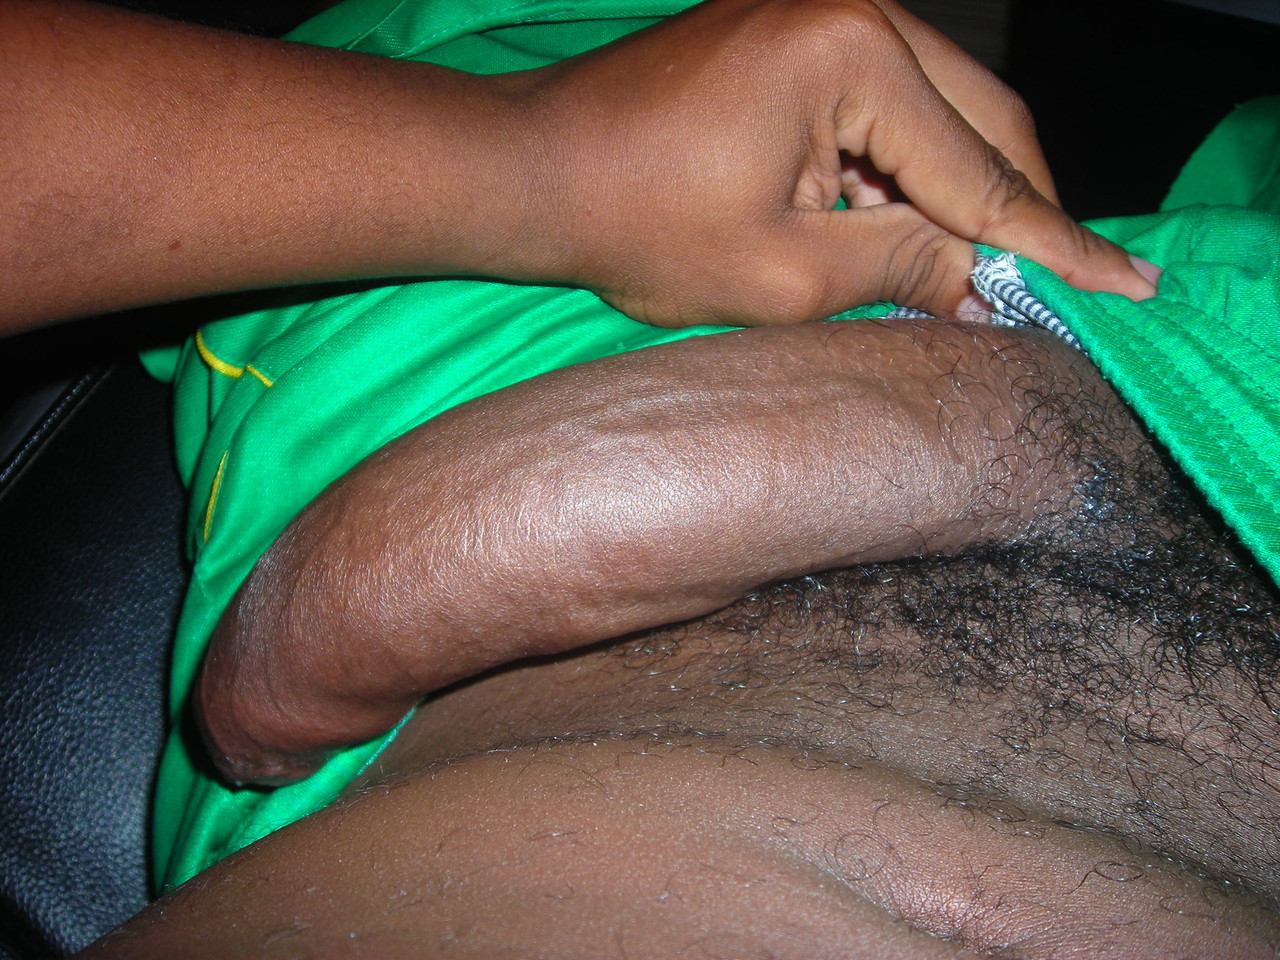 Men with hard uncut cocks